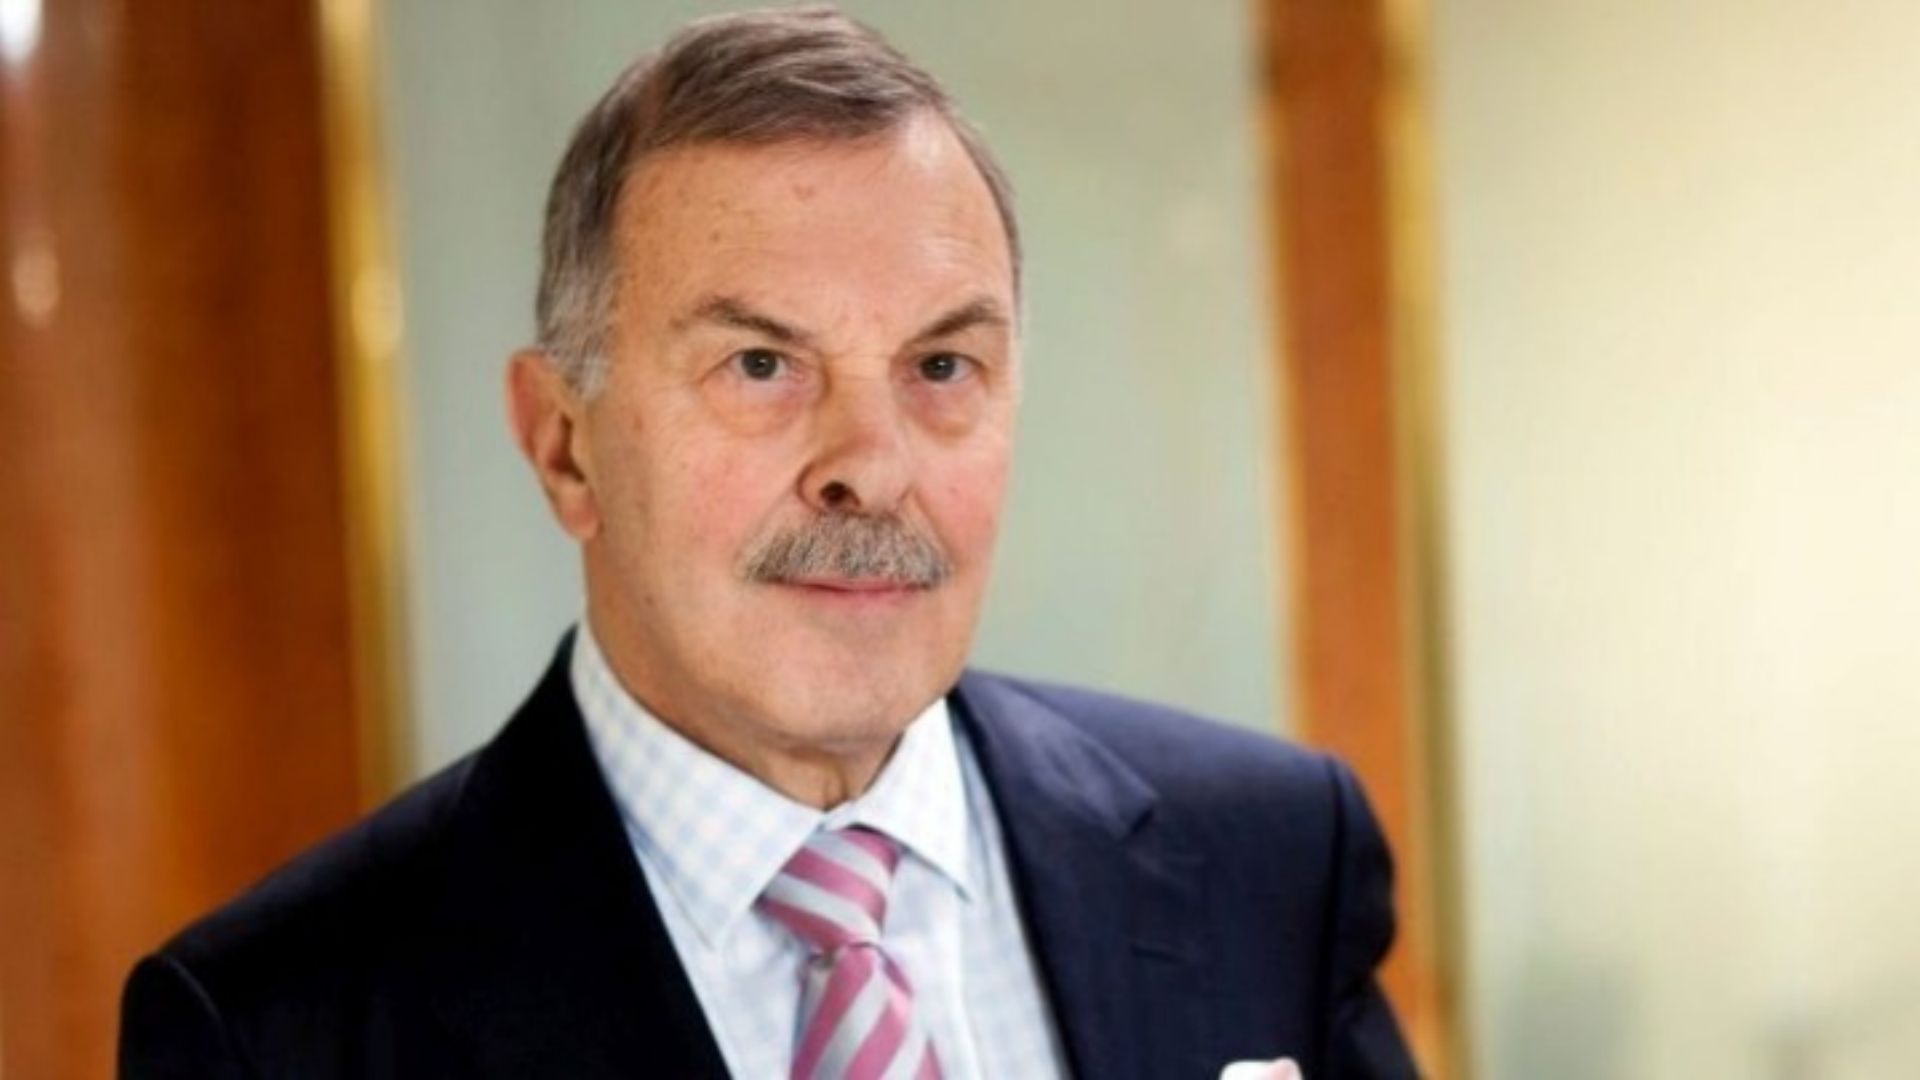 Greek shipping magnate John Angelicoussis passes aged 73